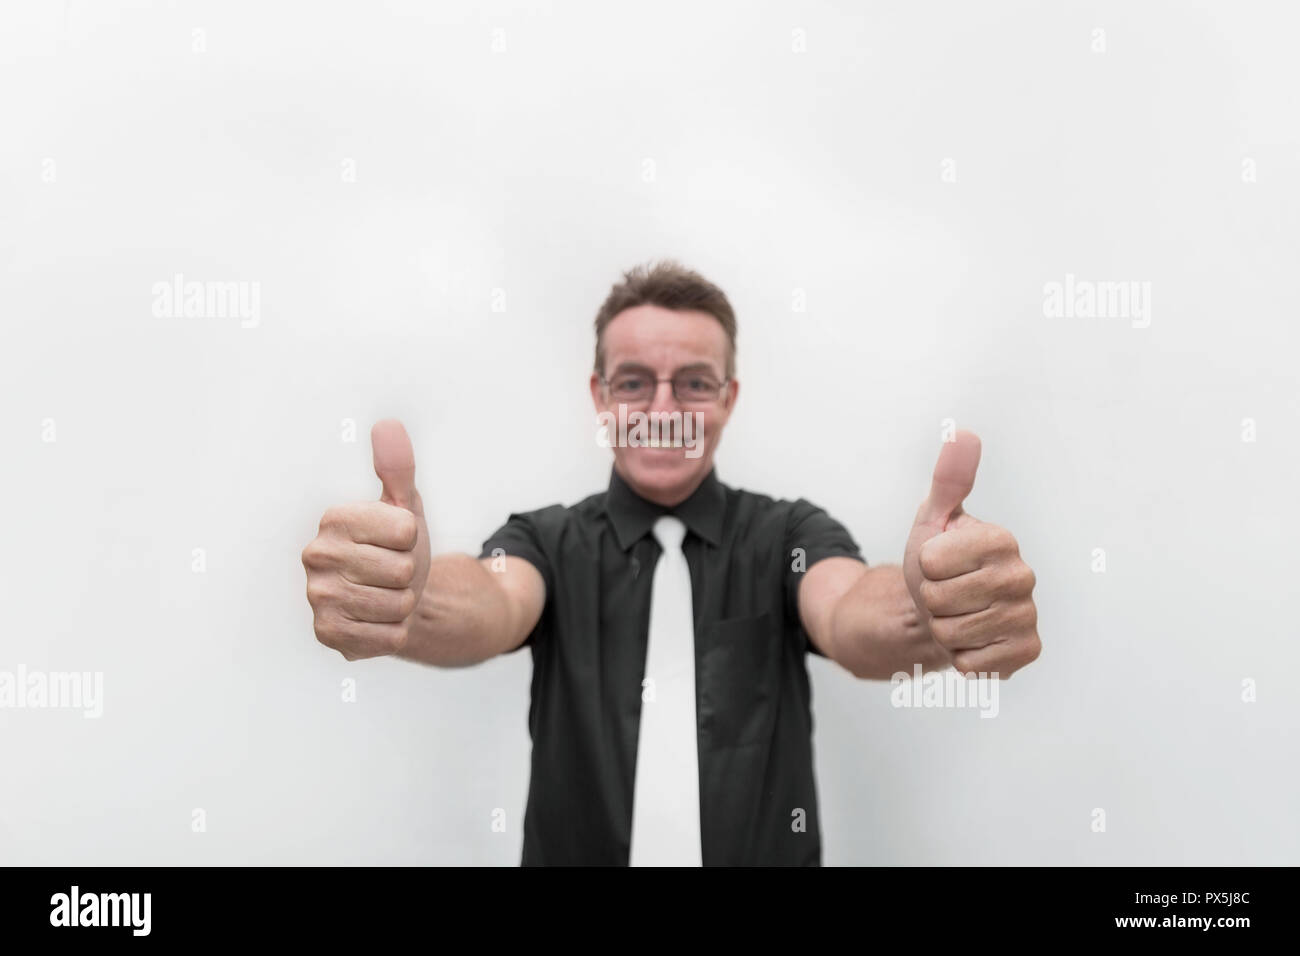 thumbs up business man in optimism pose in success concept with a big smile white teeth gesture - Stock Image